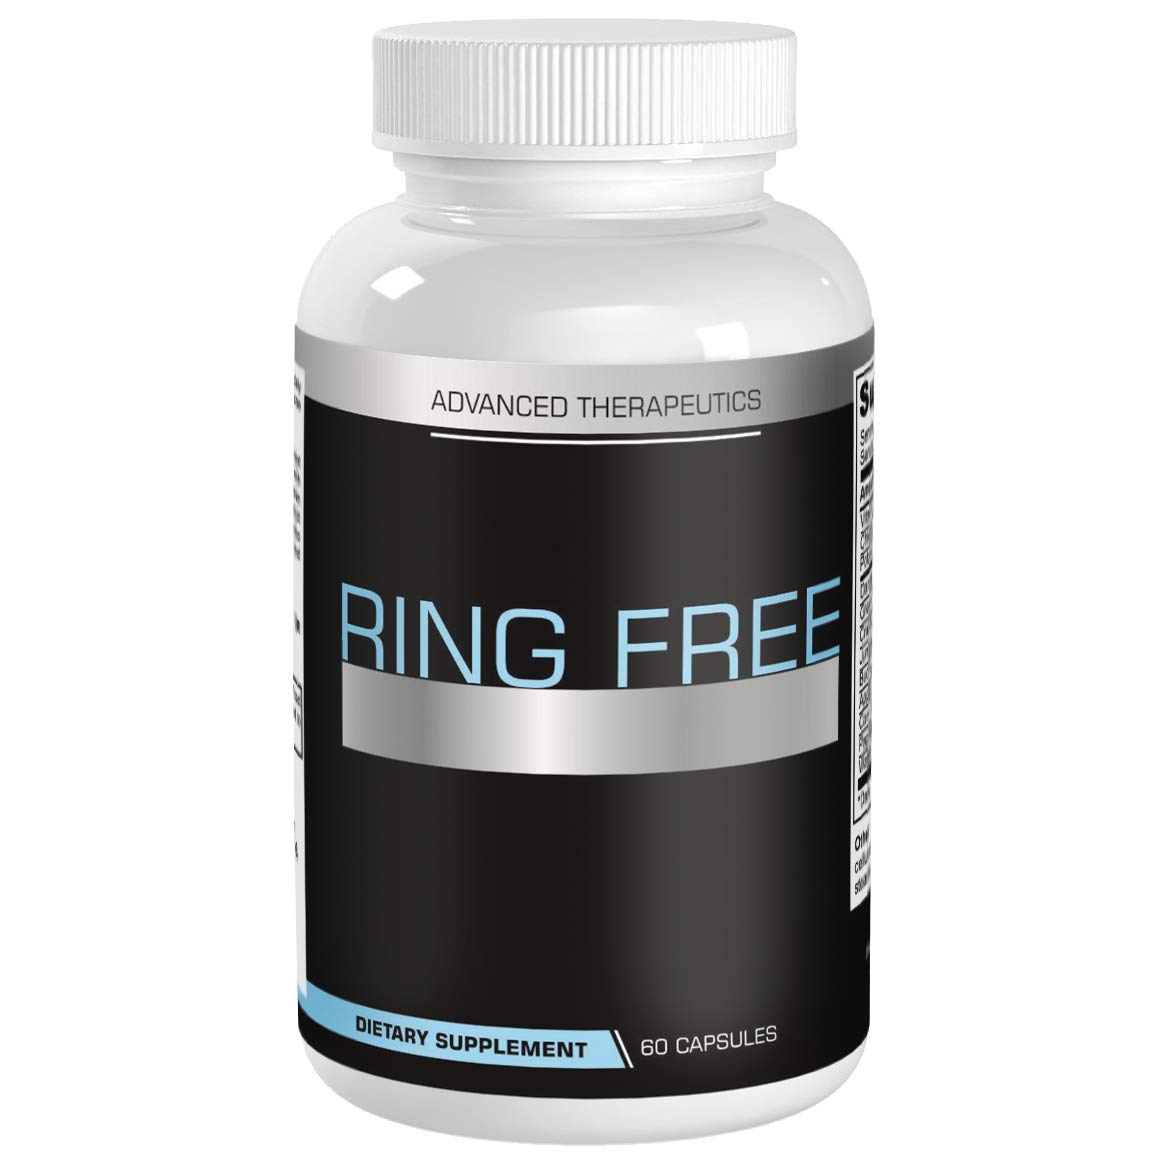 Ring Free Tinnitus Relief Supplement. End Tinnitus Naturally and Ear Ringing. 600 Capsules of The Most Powerful Tinnitus Supplements on The Market. 60 Capsules per Anti Tinnitus Bottle. Stop Tinnitus